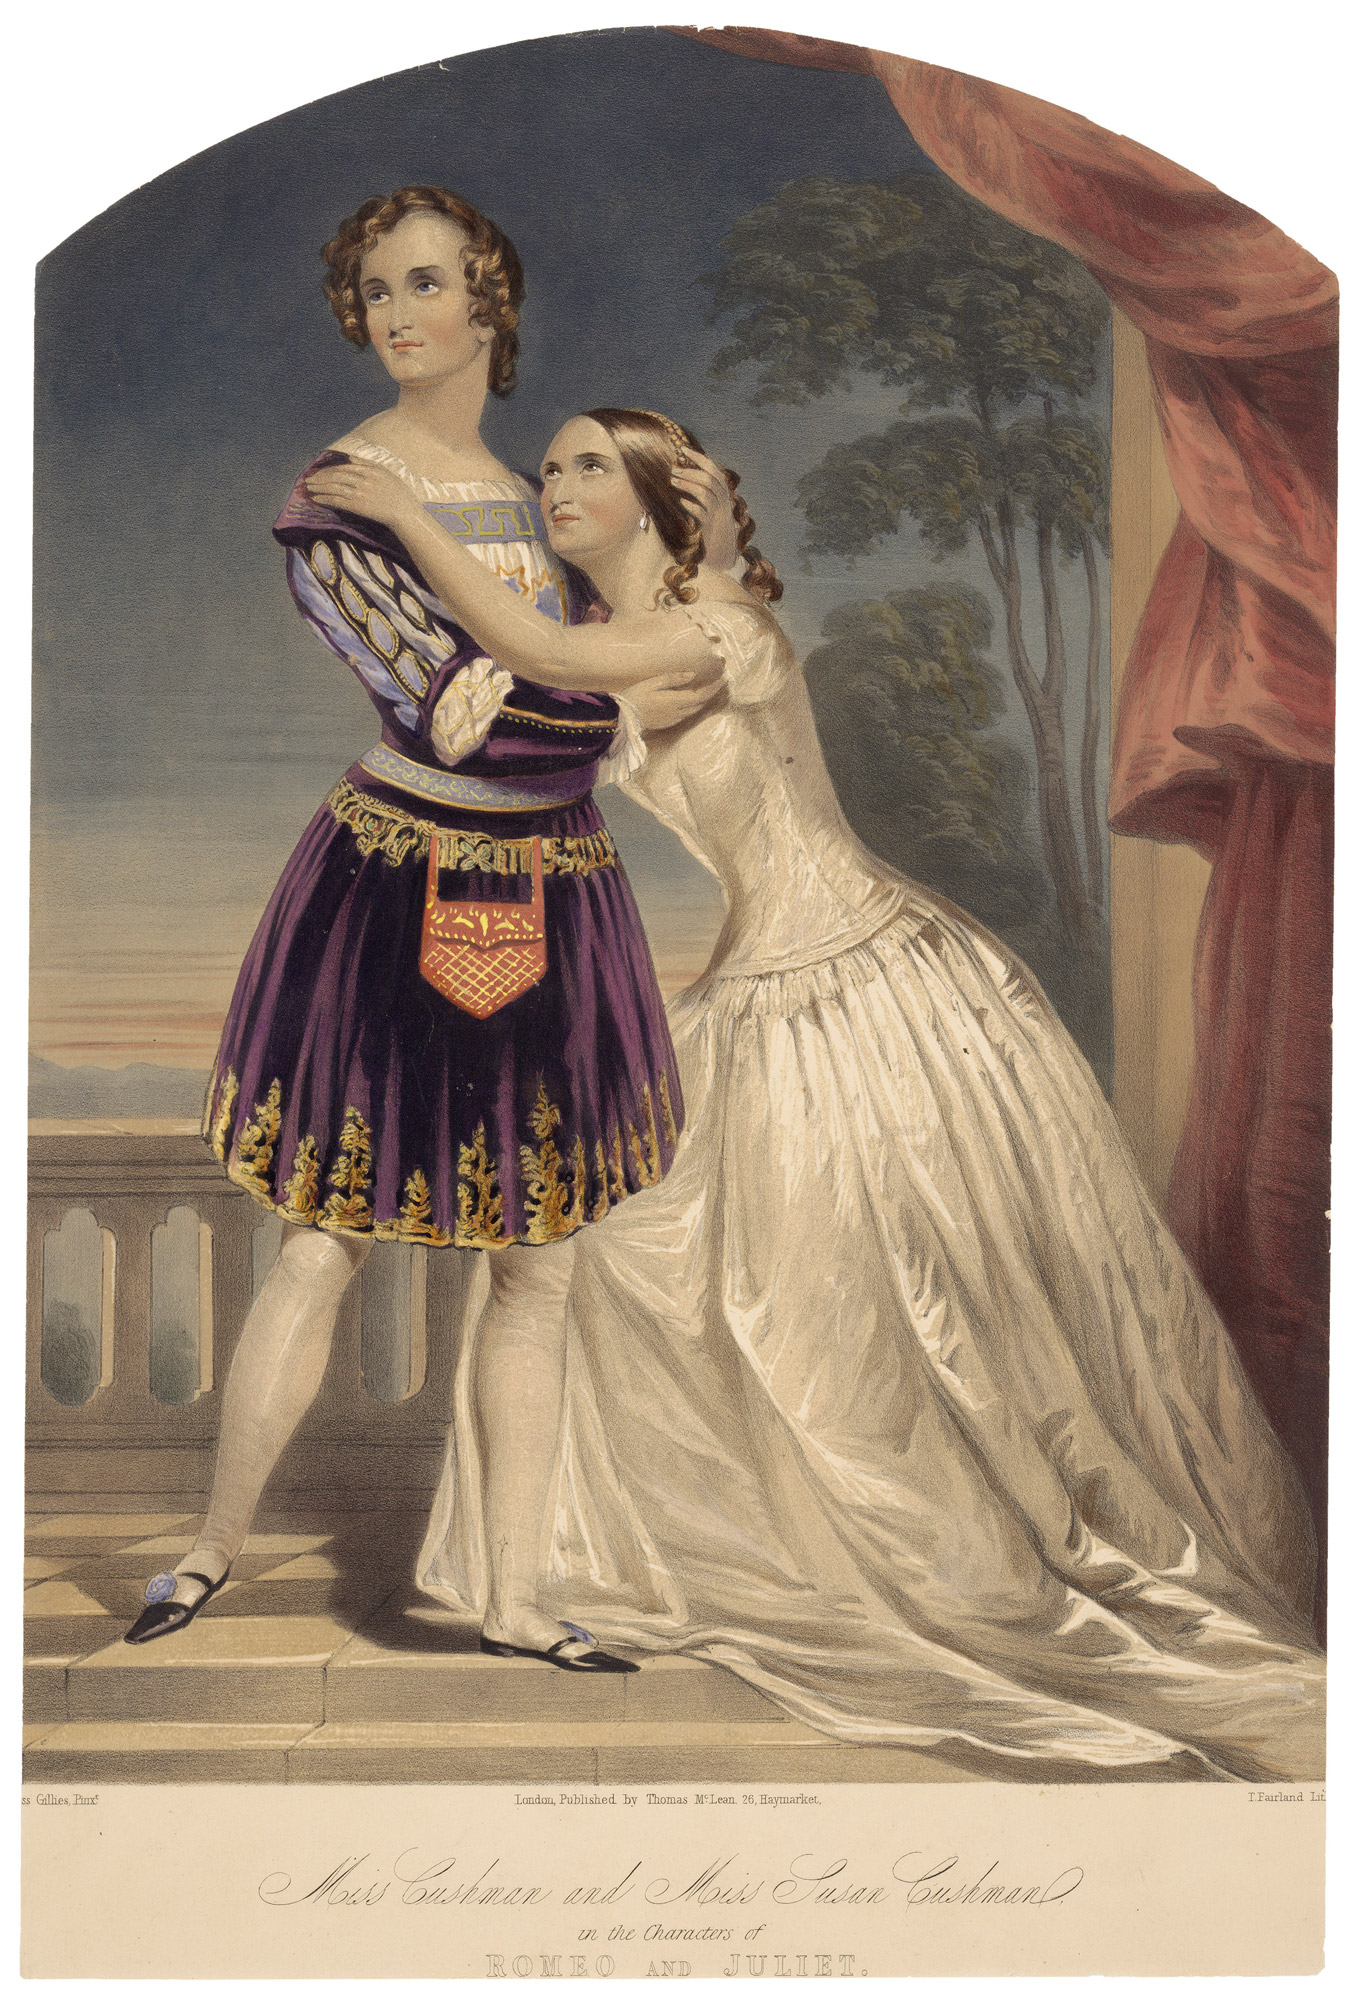 Lithograph of the Cushman sisters as Romeo and Juliet